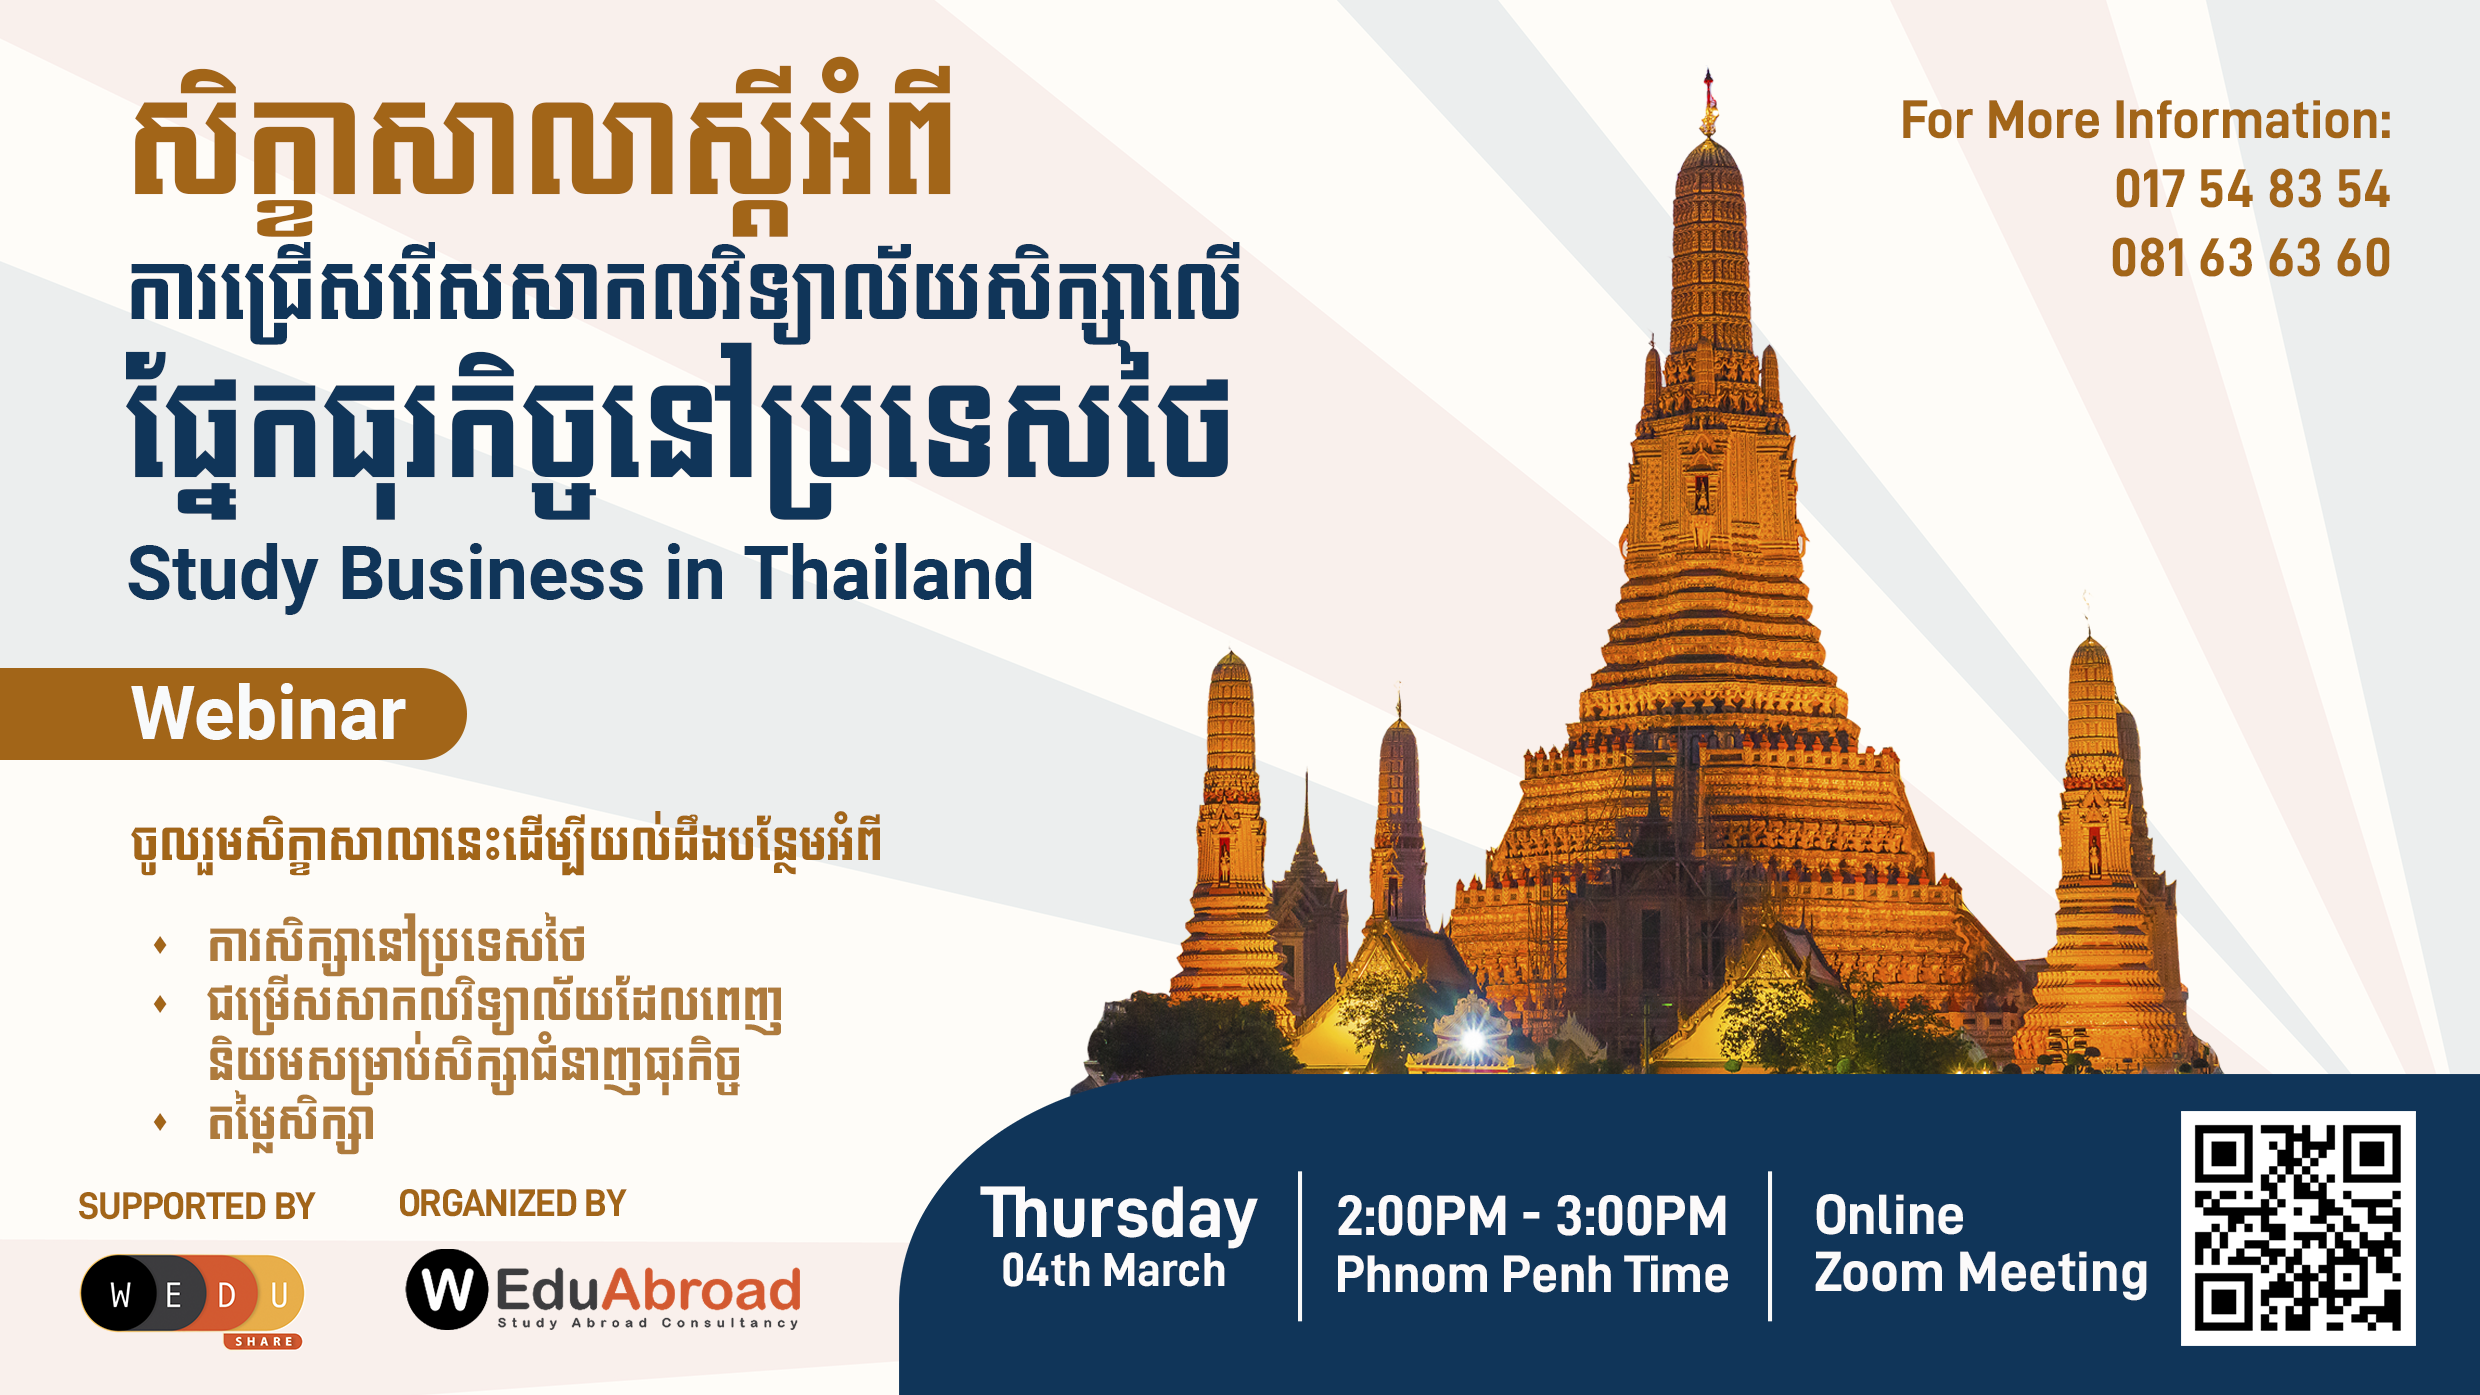 Where to Study Business in Thailand Webinar